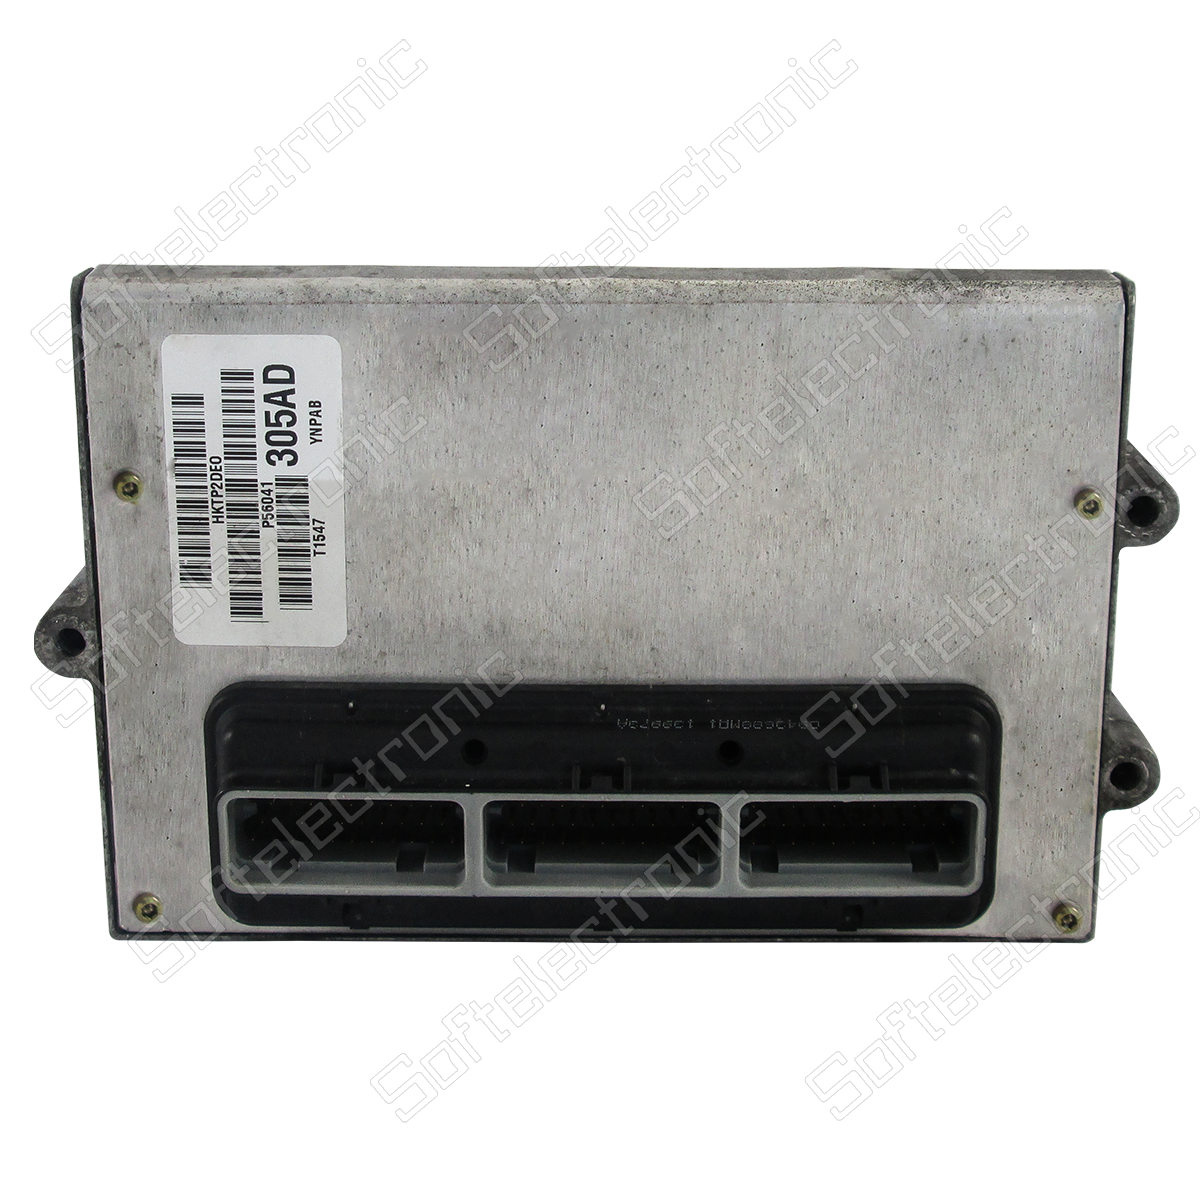 Wrangler 4.0 ECU Immo off